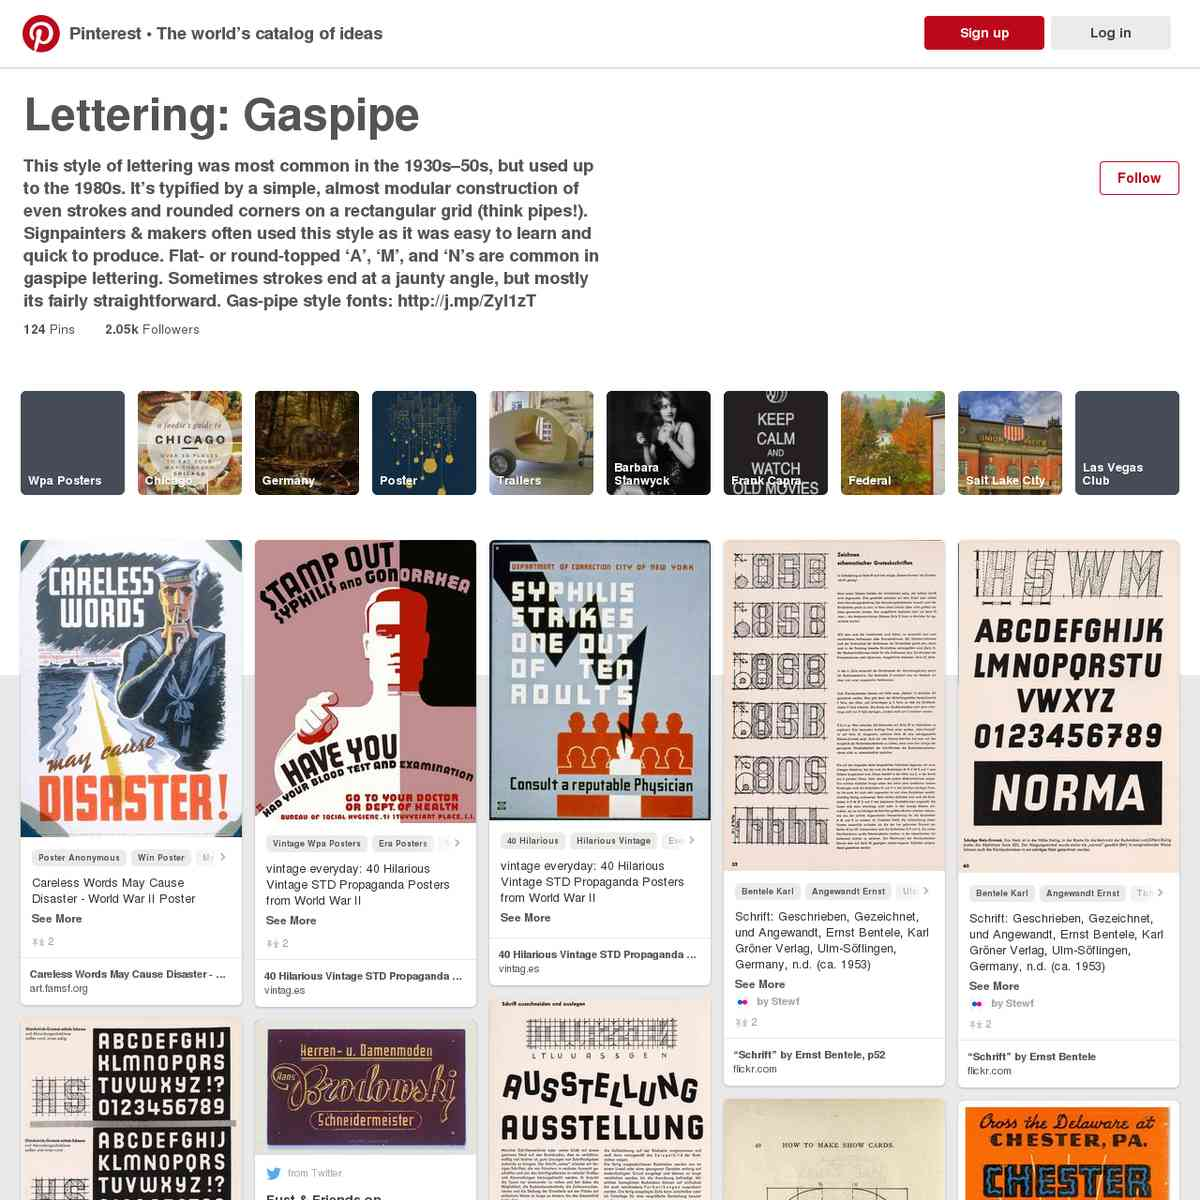 (2) Lettering: Gaspipe on Pinterest